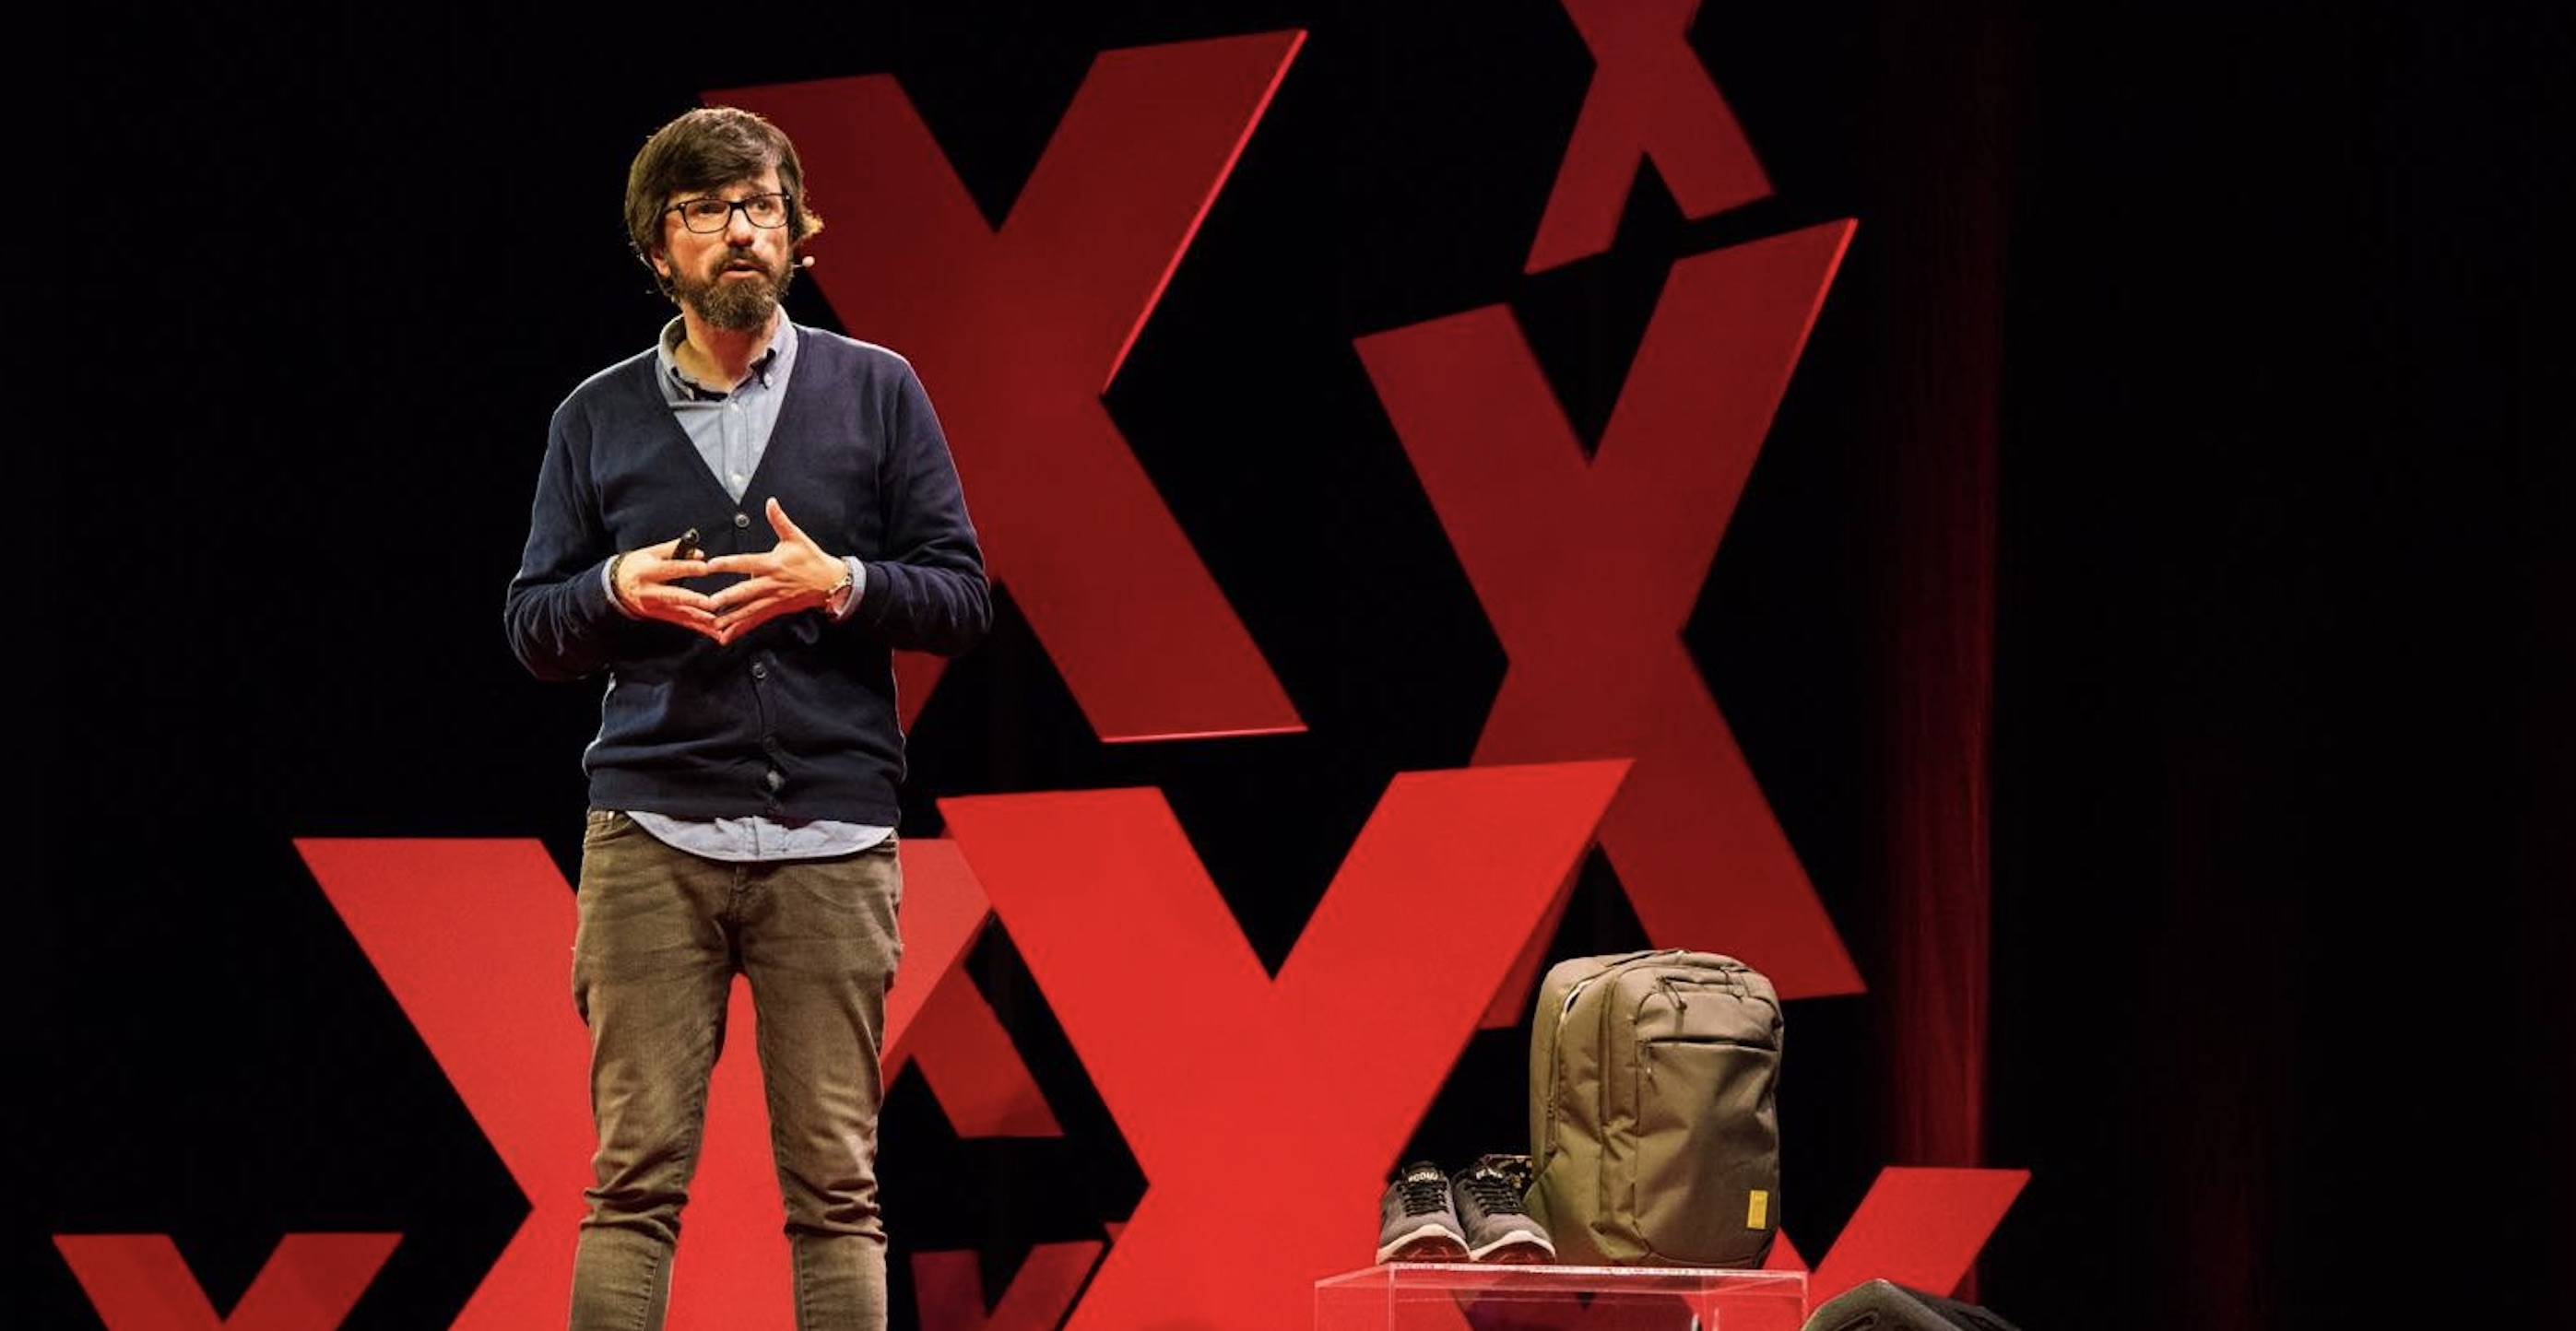 TEDx Galicia - Javier Varela - Marketing Sostenible